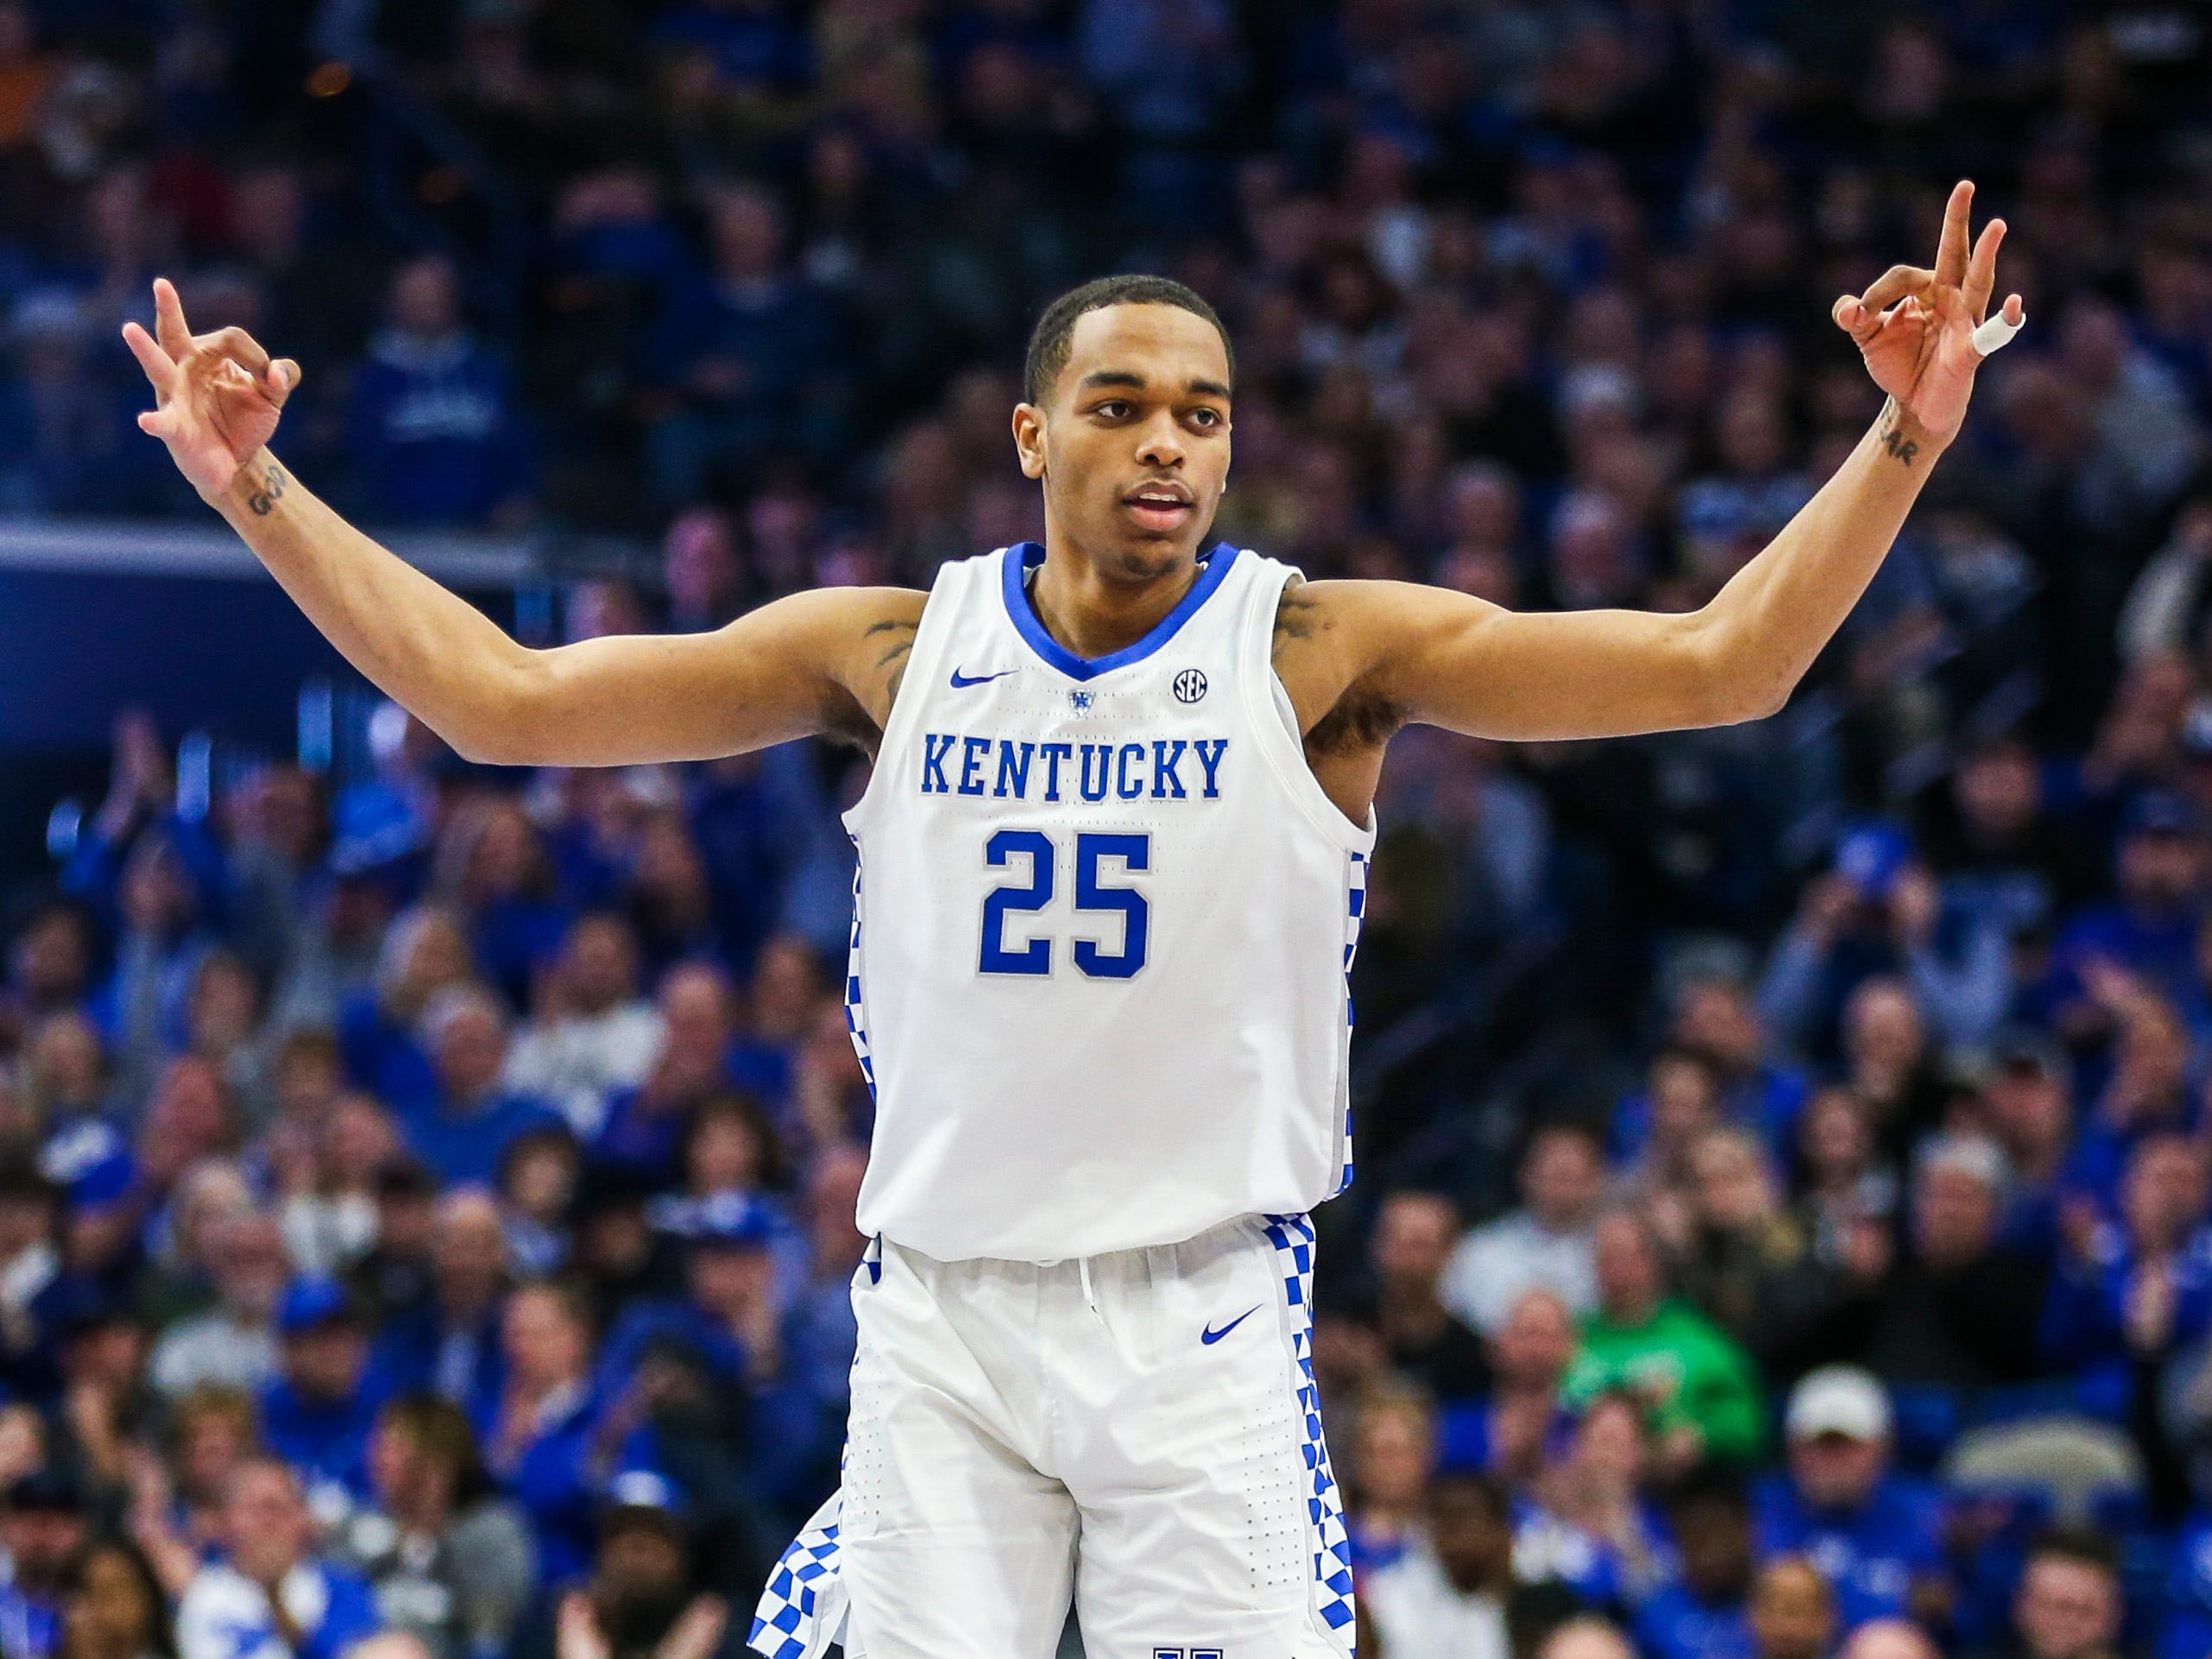 Kentucky's PJ Washington Jr signaled three as he led the Wildcats with 21 points and six rebounds with four blocks against Mississippi State Tuesday night at Rupp Arena in Lexington. The Wildcats won 76-55, their first consecutive wins over ranked teams since 2011. January 22, 2019